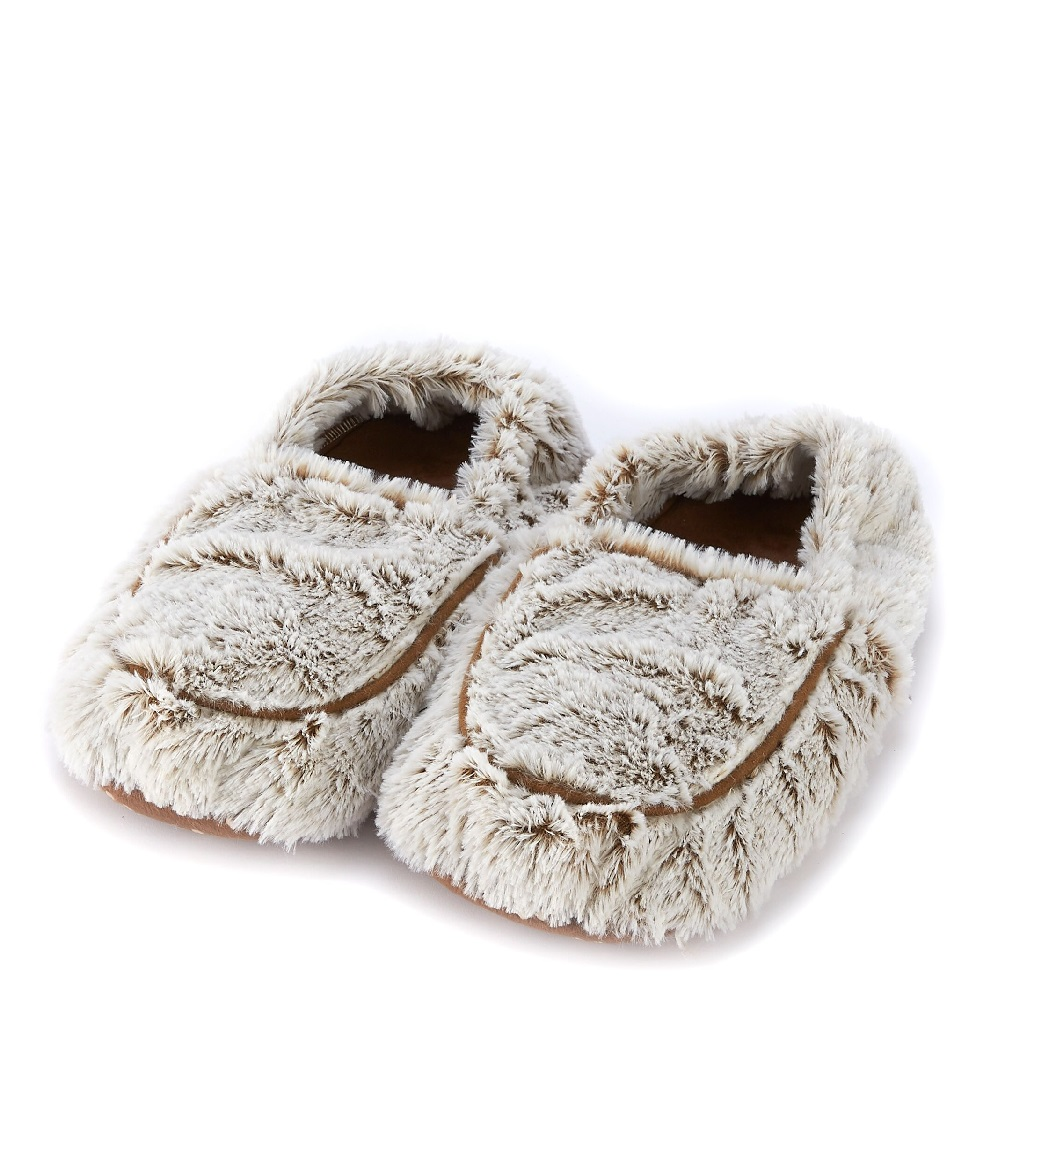 Пинкл (Pinkl) | Тапочки-грелки бежевые Marshmallow | Intelex Ltd Warmies Cozy Body Beige Marshmallow Slippers